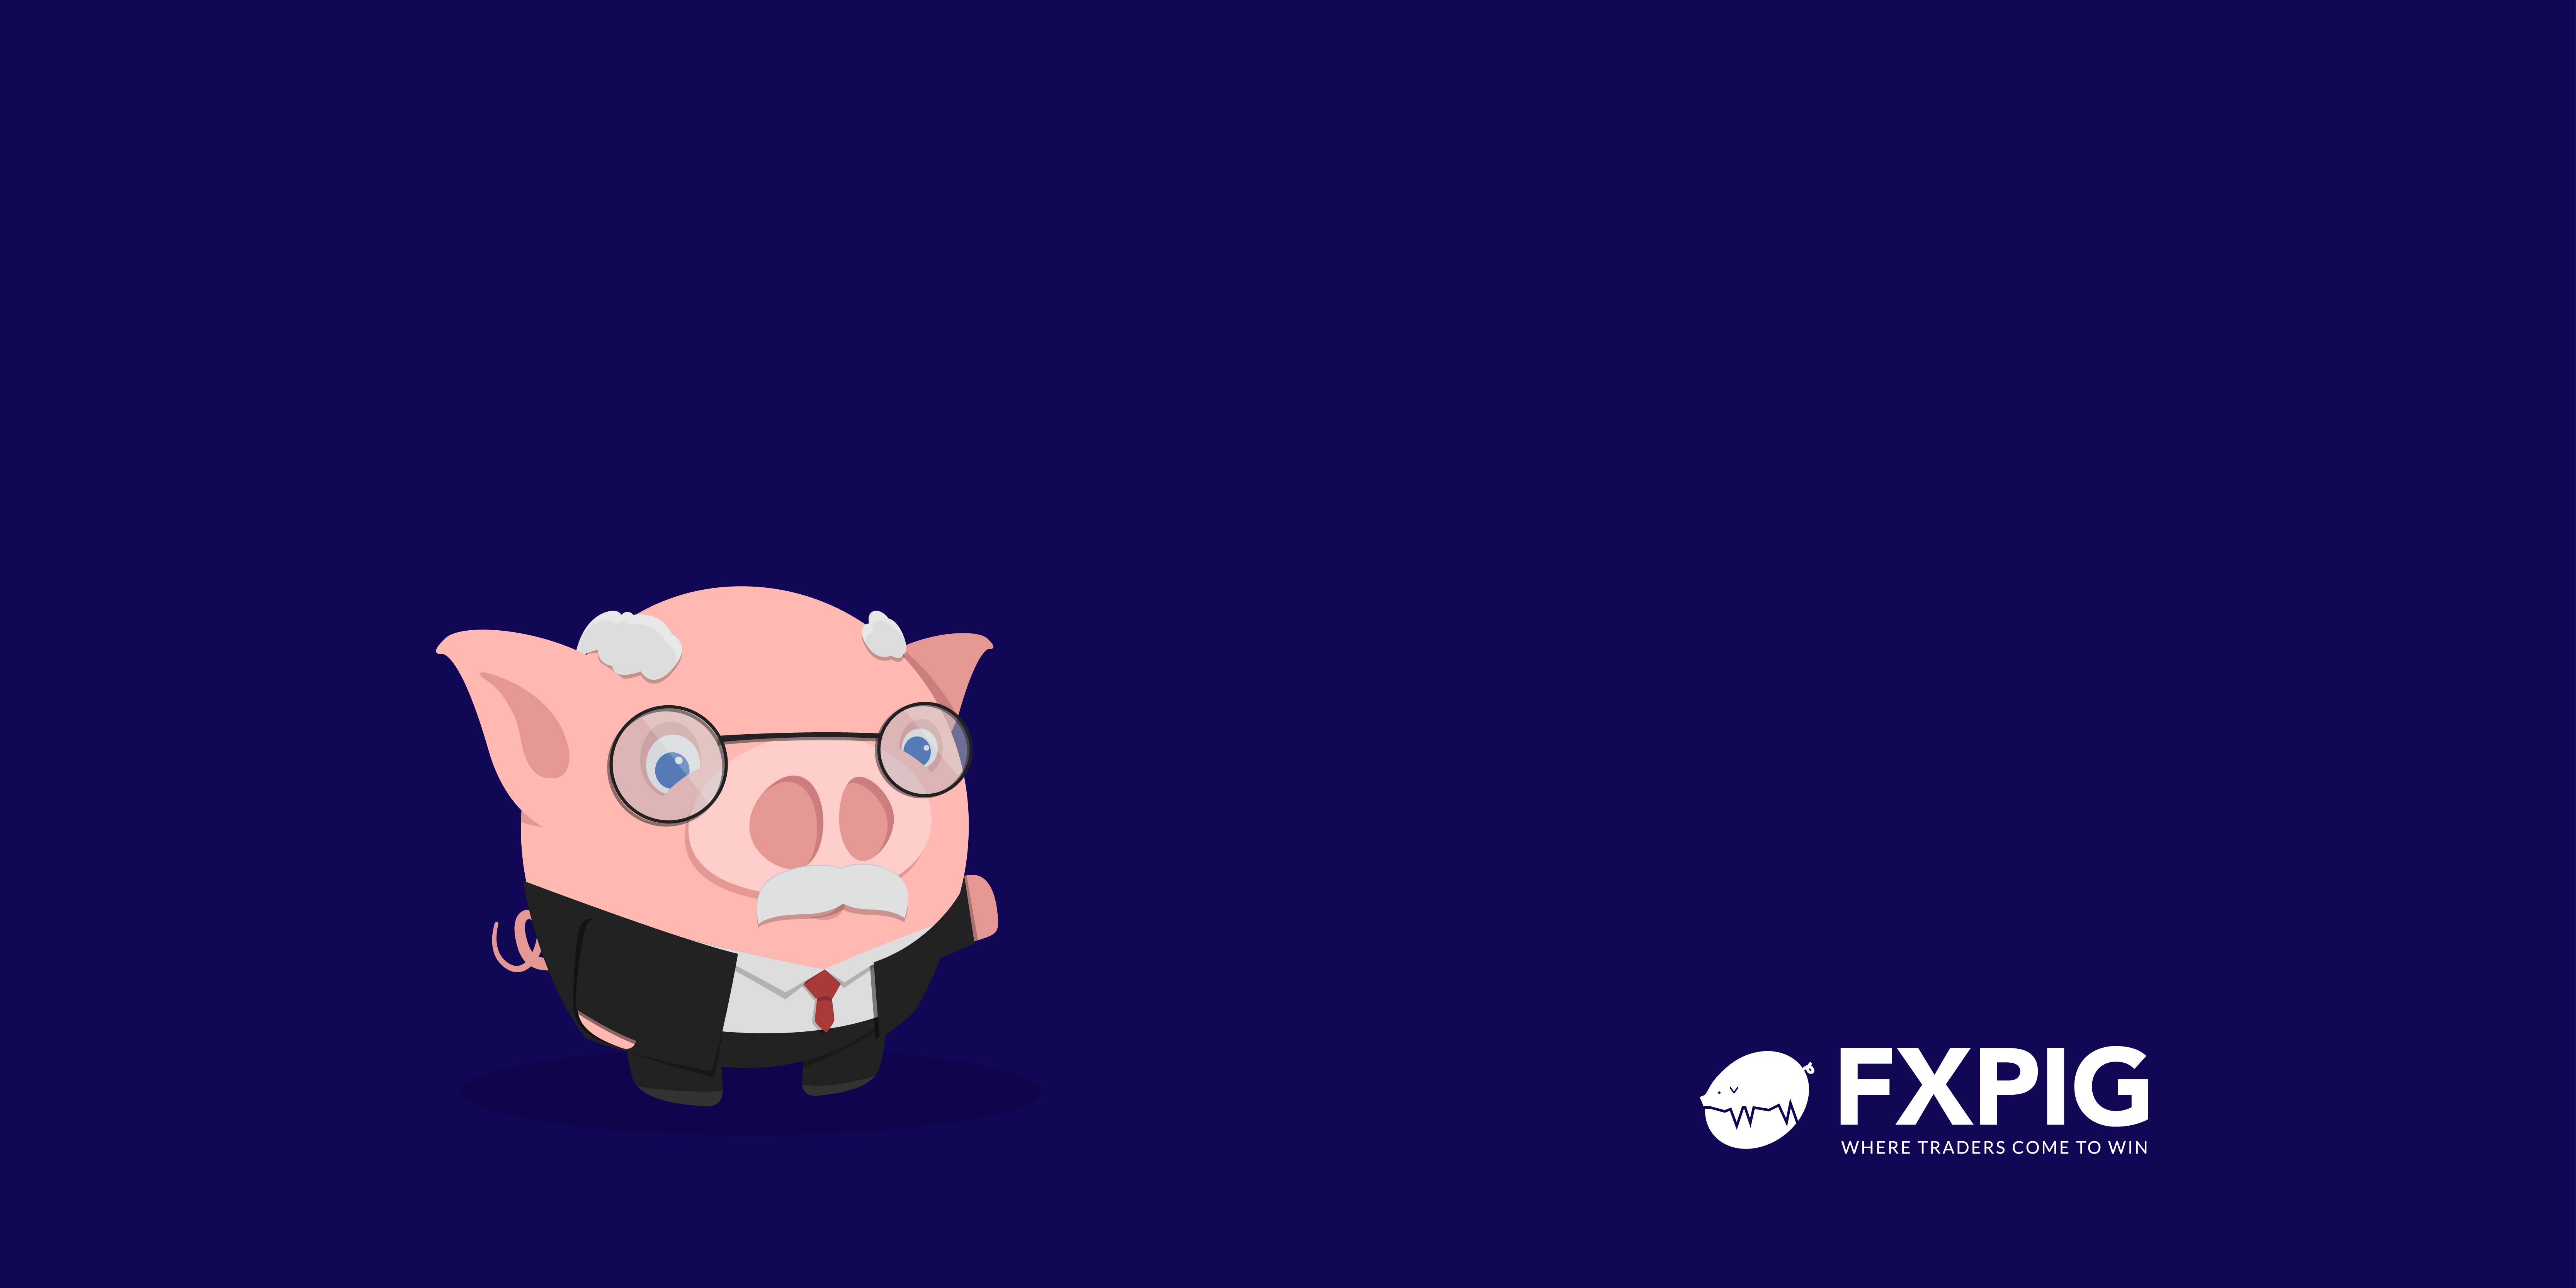 Forex_Trading-Wisdom_Quotes_Bulls-and-bears_FXPIG